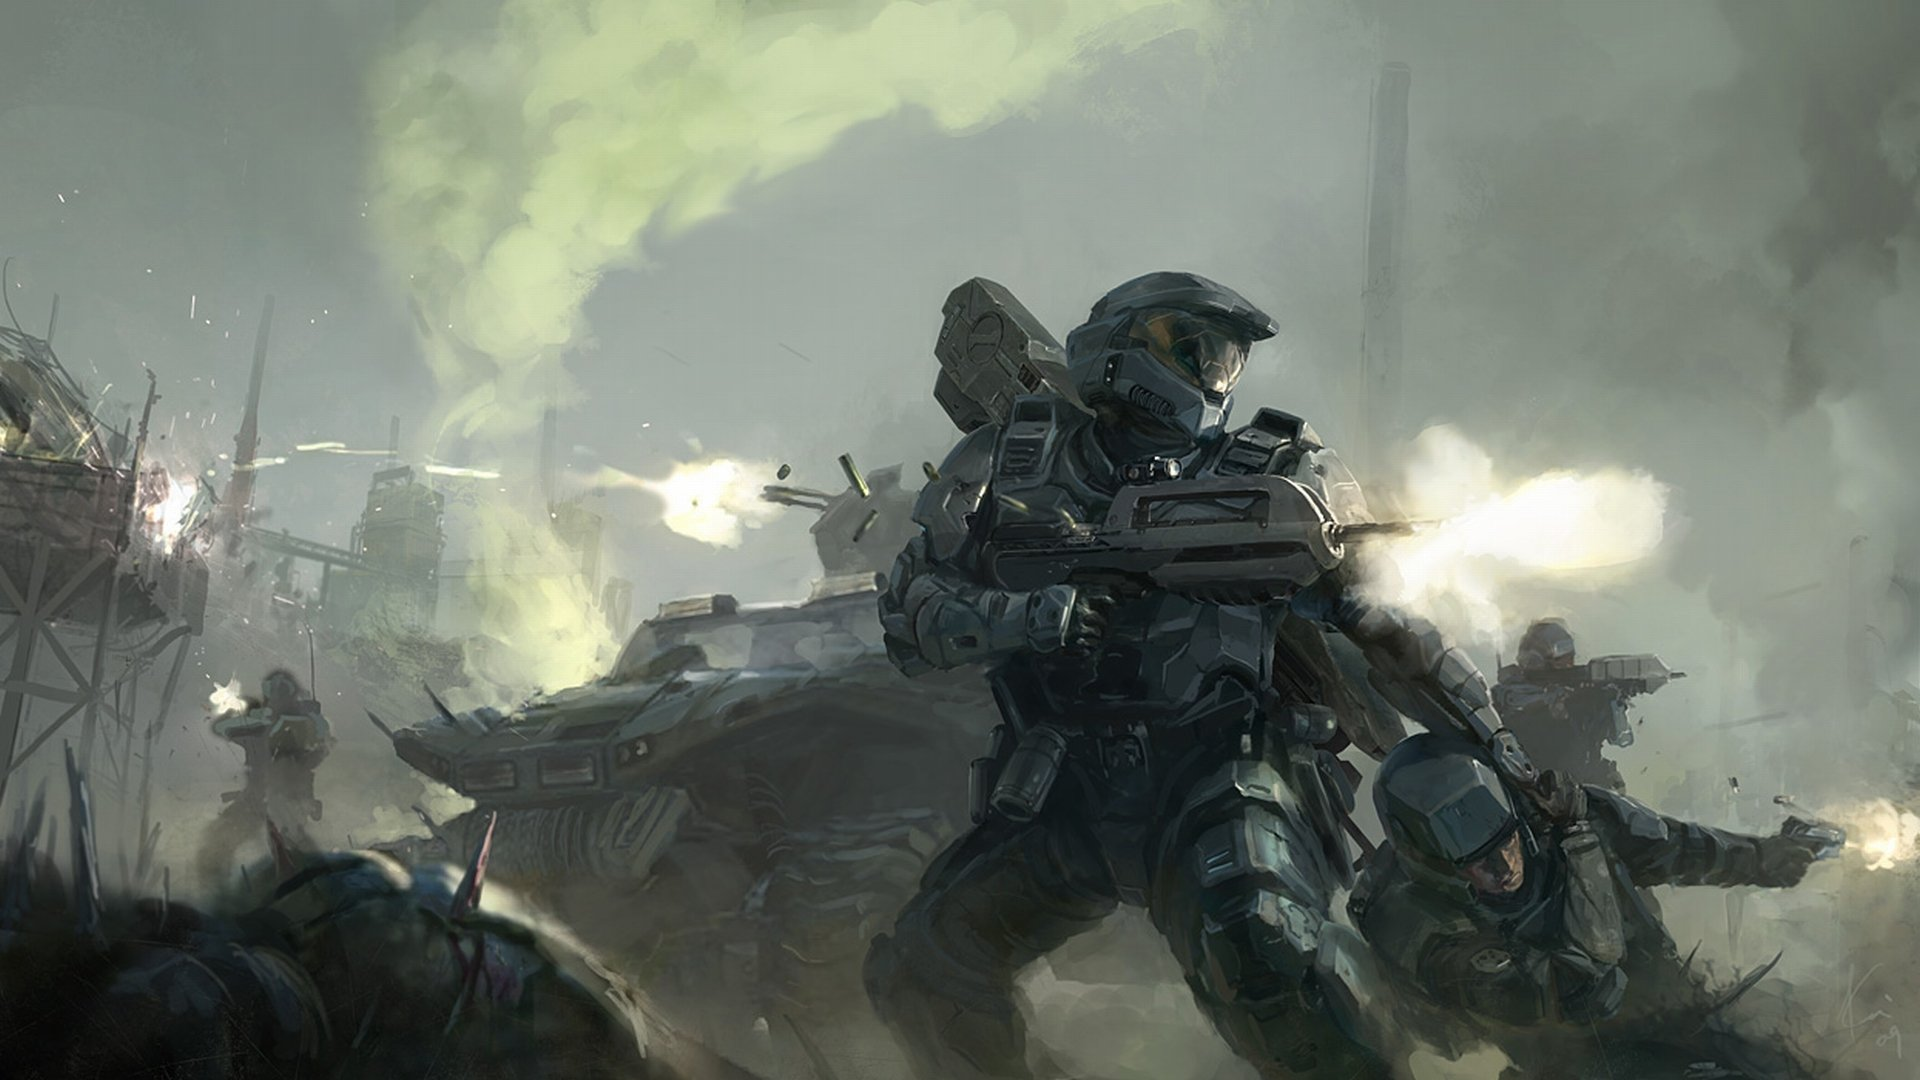 Halo Master Chief Drawing warriors soldiers weapons battle guns 1920x1080